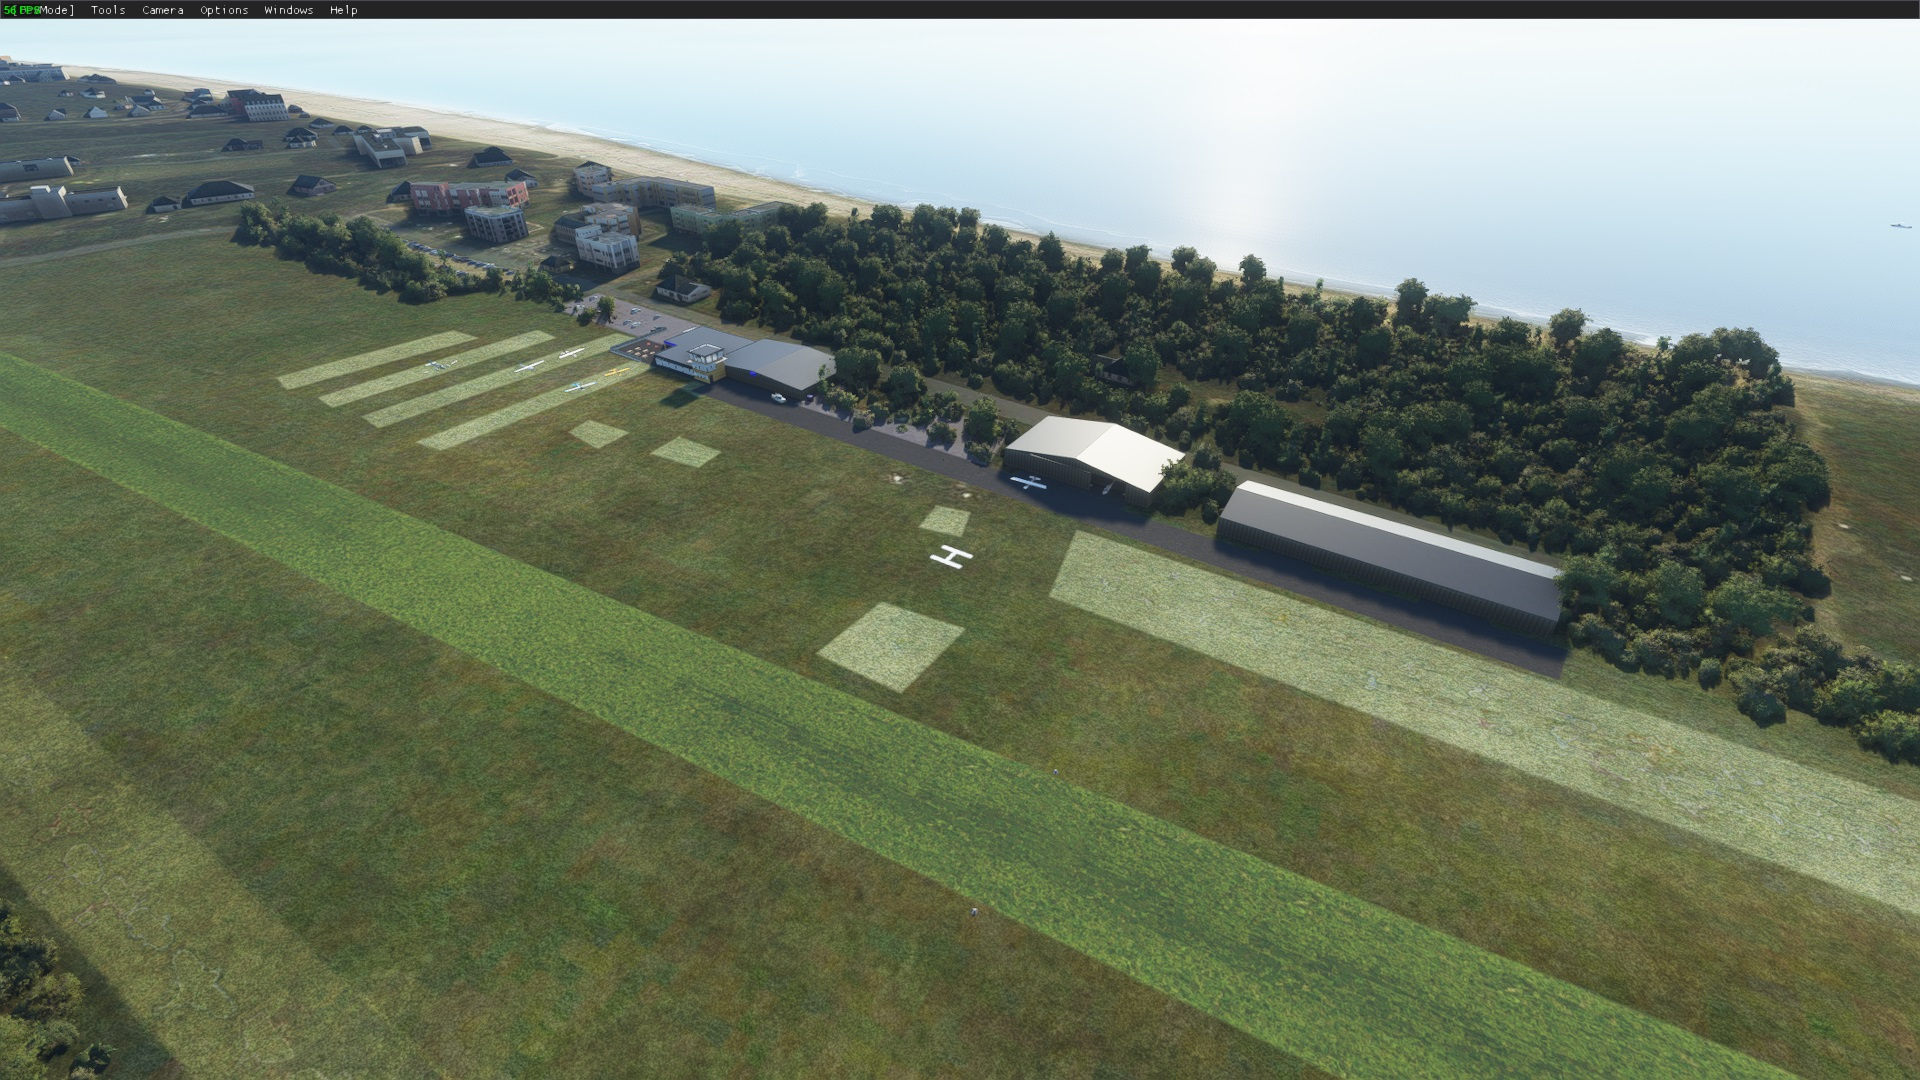 FLIGHTSIM.CENTER - EDXW, EDXY, EDXH BUNDLE 3 AIRFIELD/AIRPORT PACK MSFS